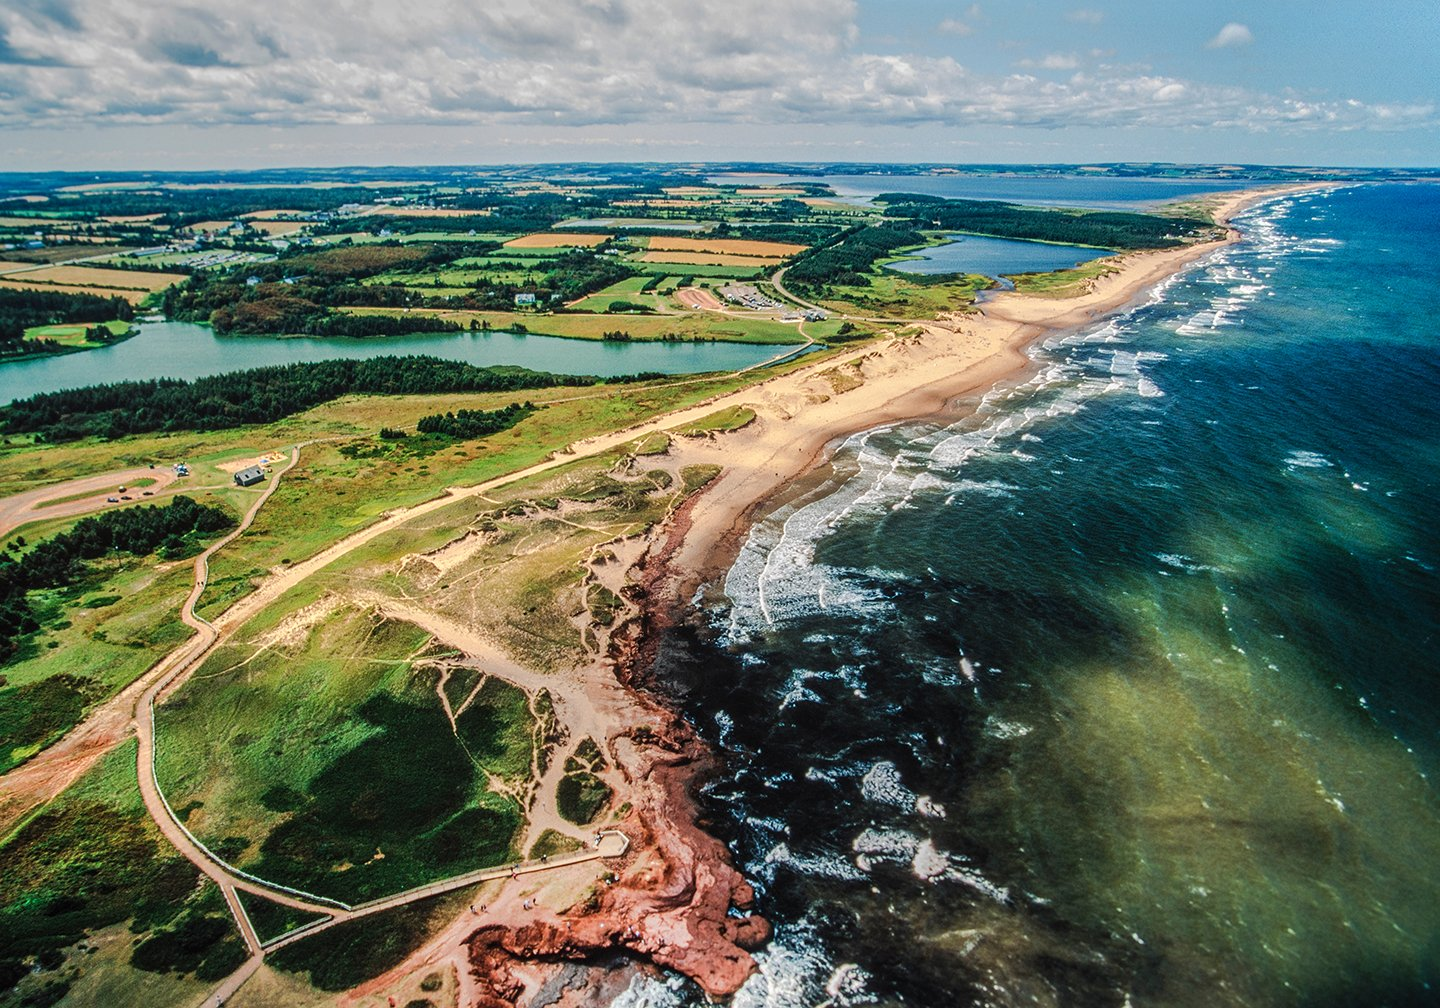 An aerial view of Prince Edward Island in Canada, with green fields on the left, yellow beach in the middle, and dark green water on the right